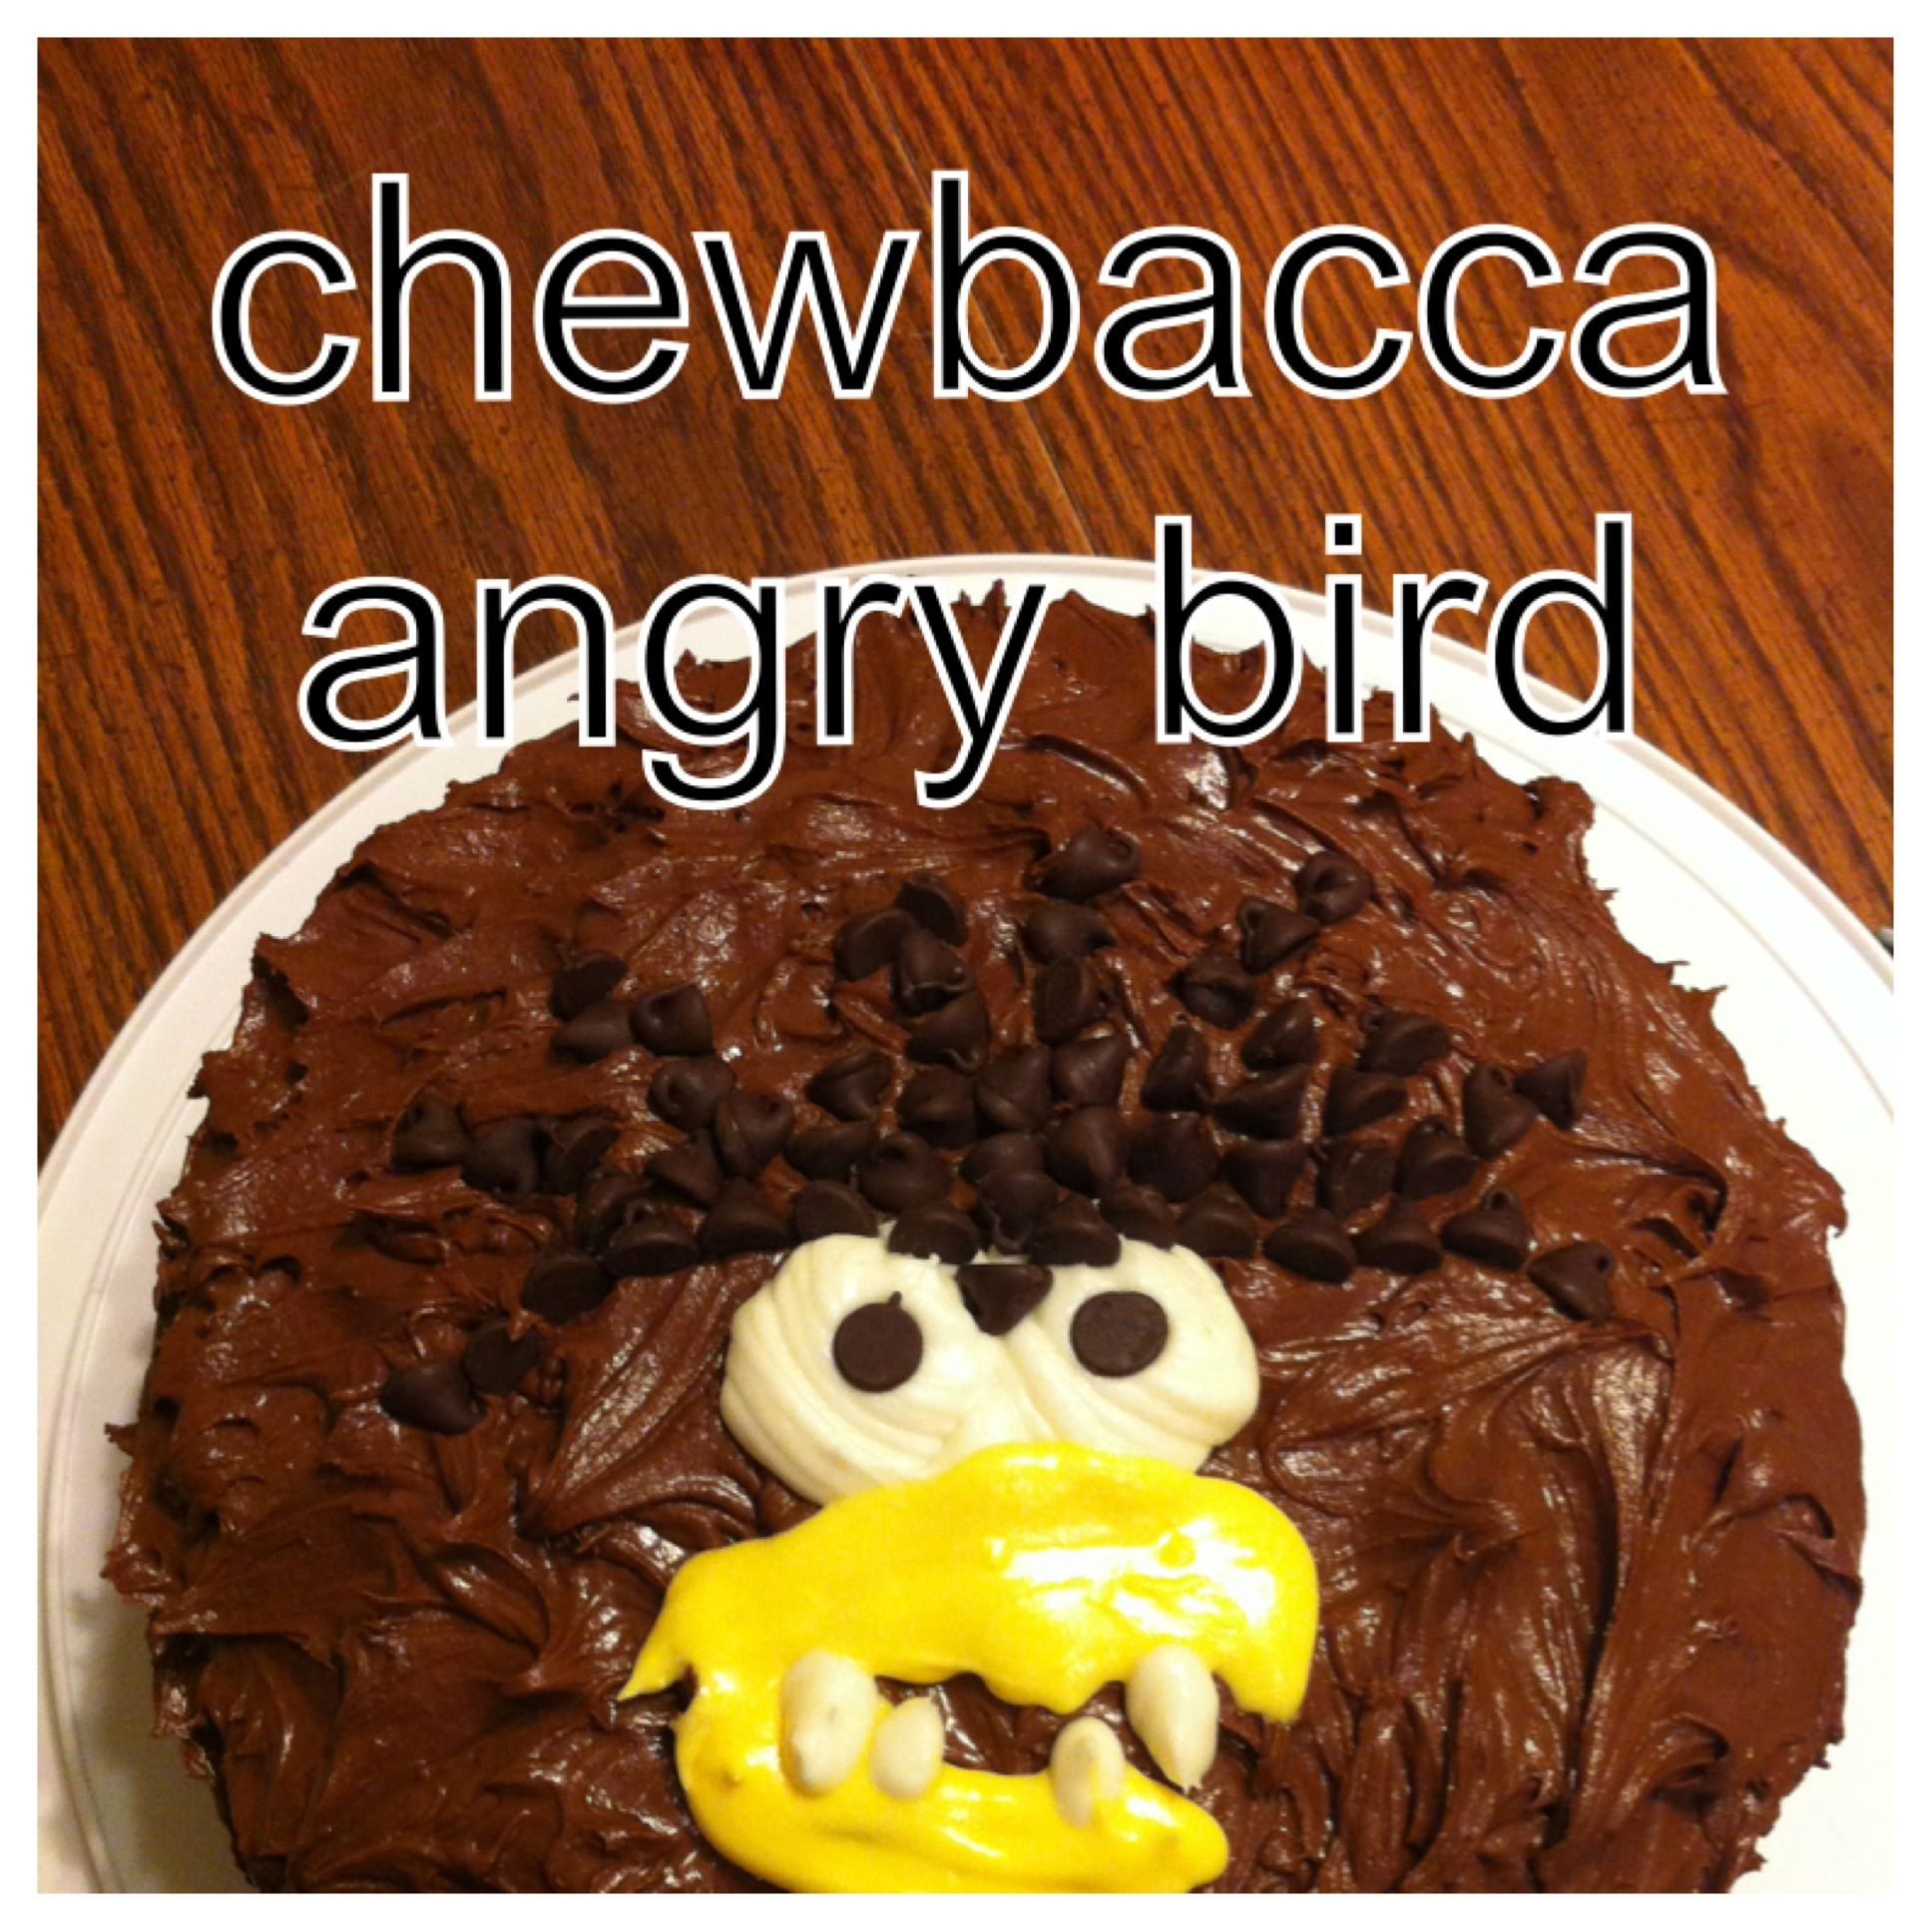 My Son Wanted Me To Make An Angry Bird Star Wars Chewbacca